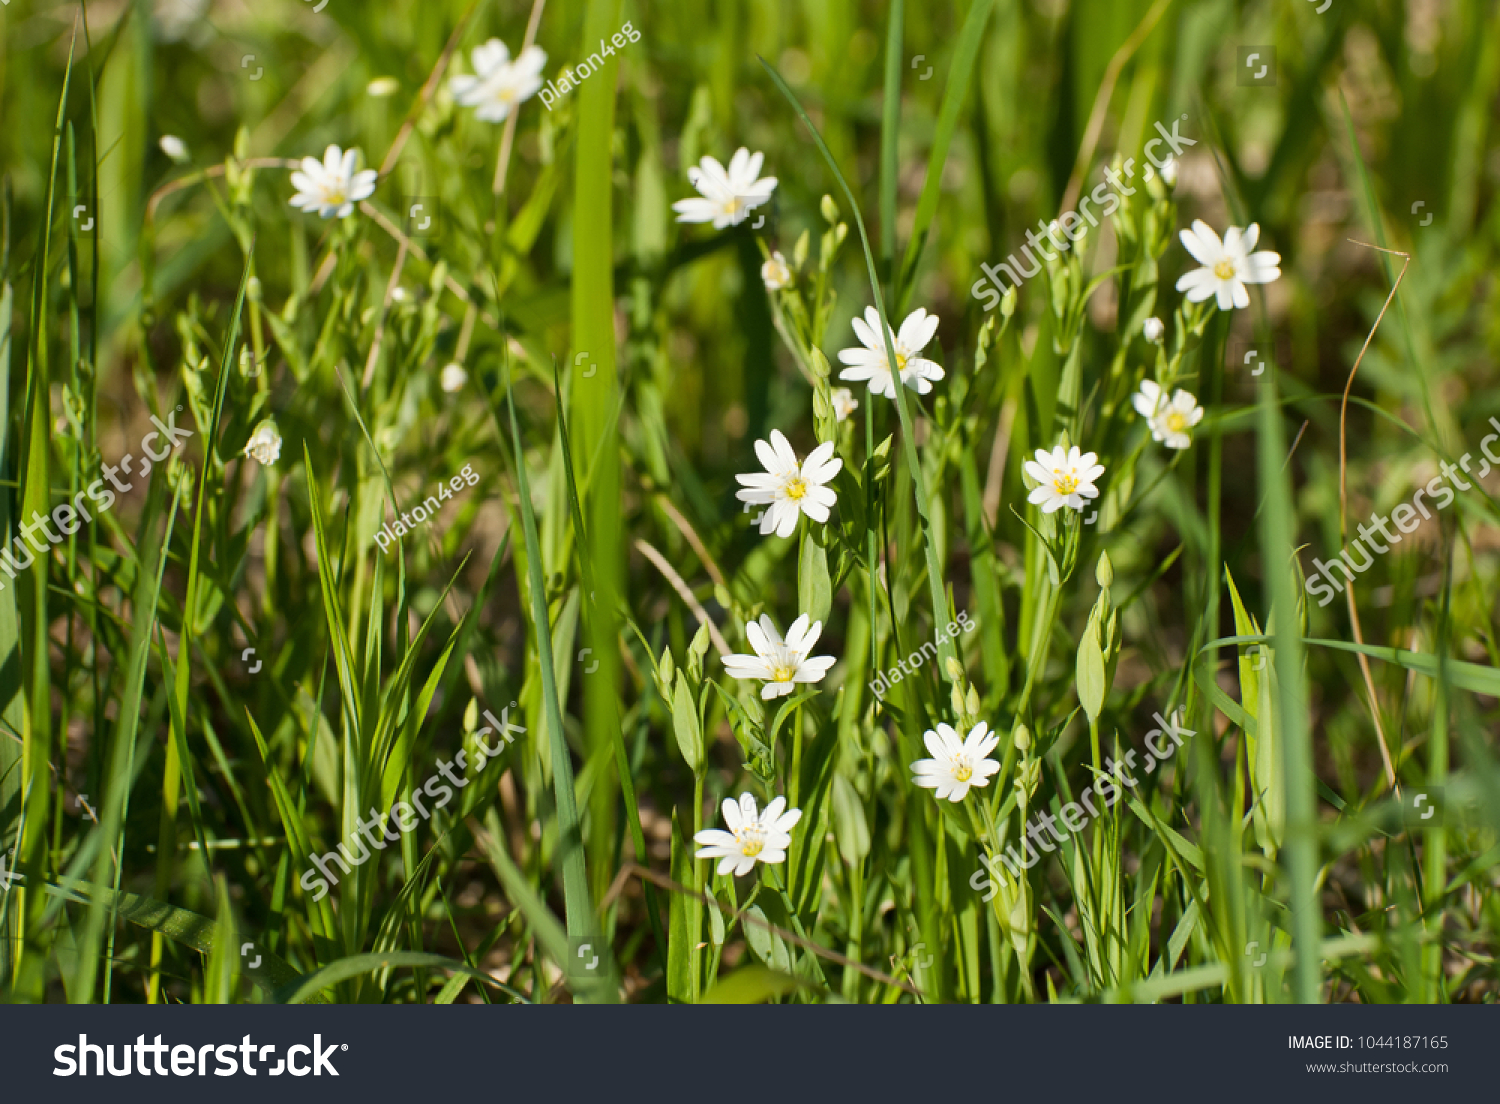 Small White Flowers In The Grass Ez Canvas